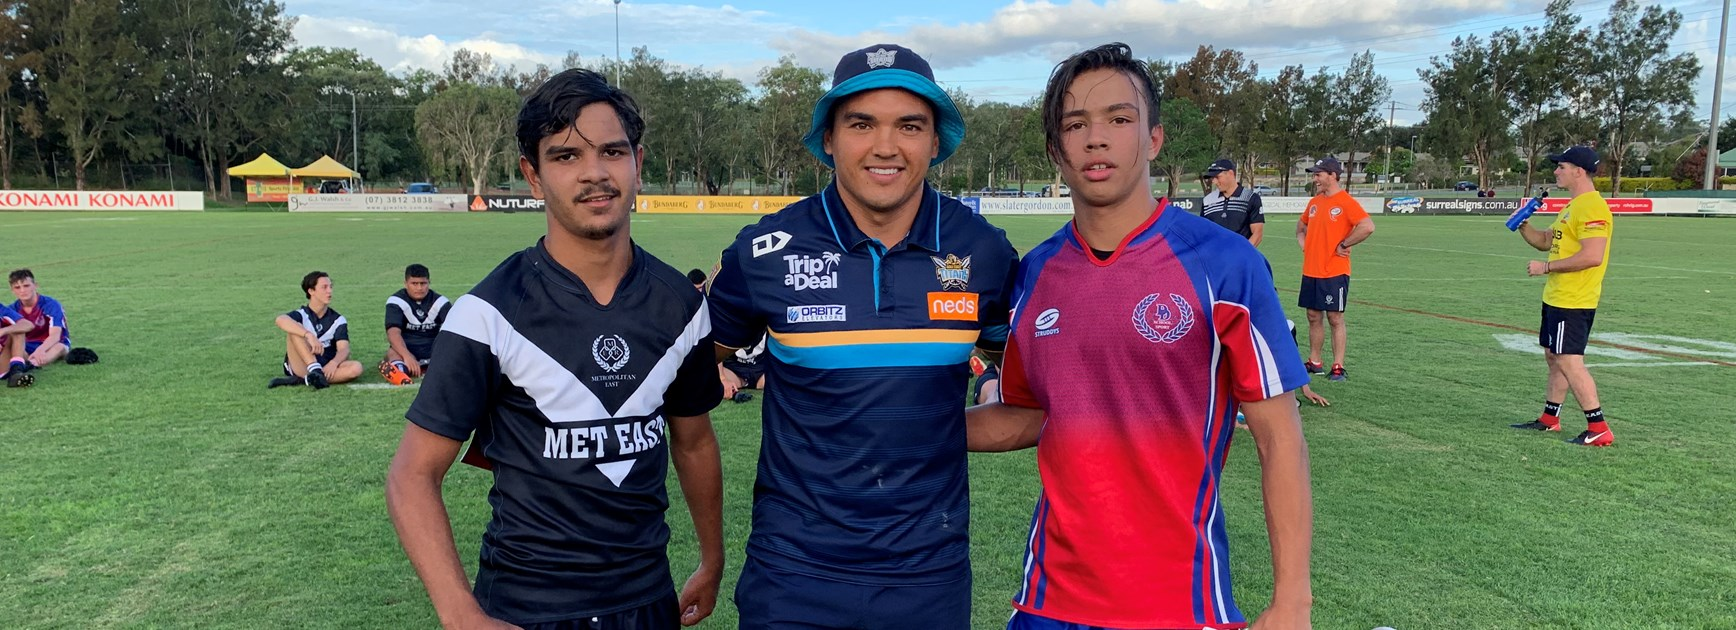 Matt Srama (former Met West player) presents player of the match awards on behalf of the Titans in the exciting Met East victory over last year's champions Darling Downs to Rodney McGinness (Marsden SHS) and Trae Bennetto (Goondiwindi SHS).  Photo: supplied